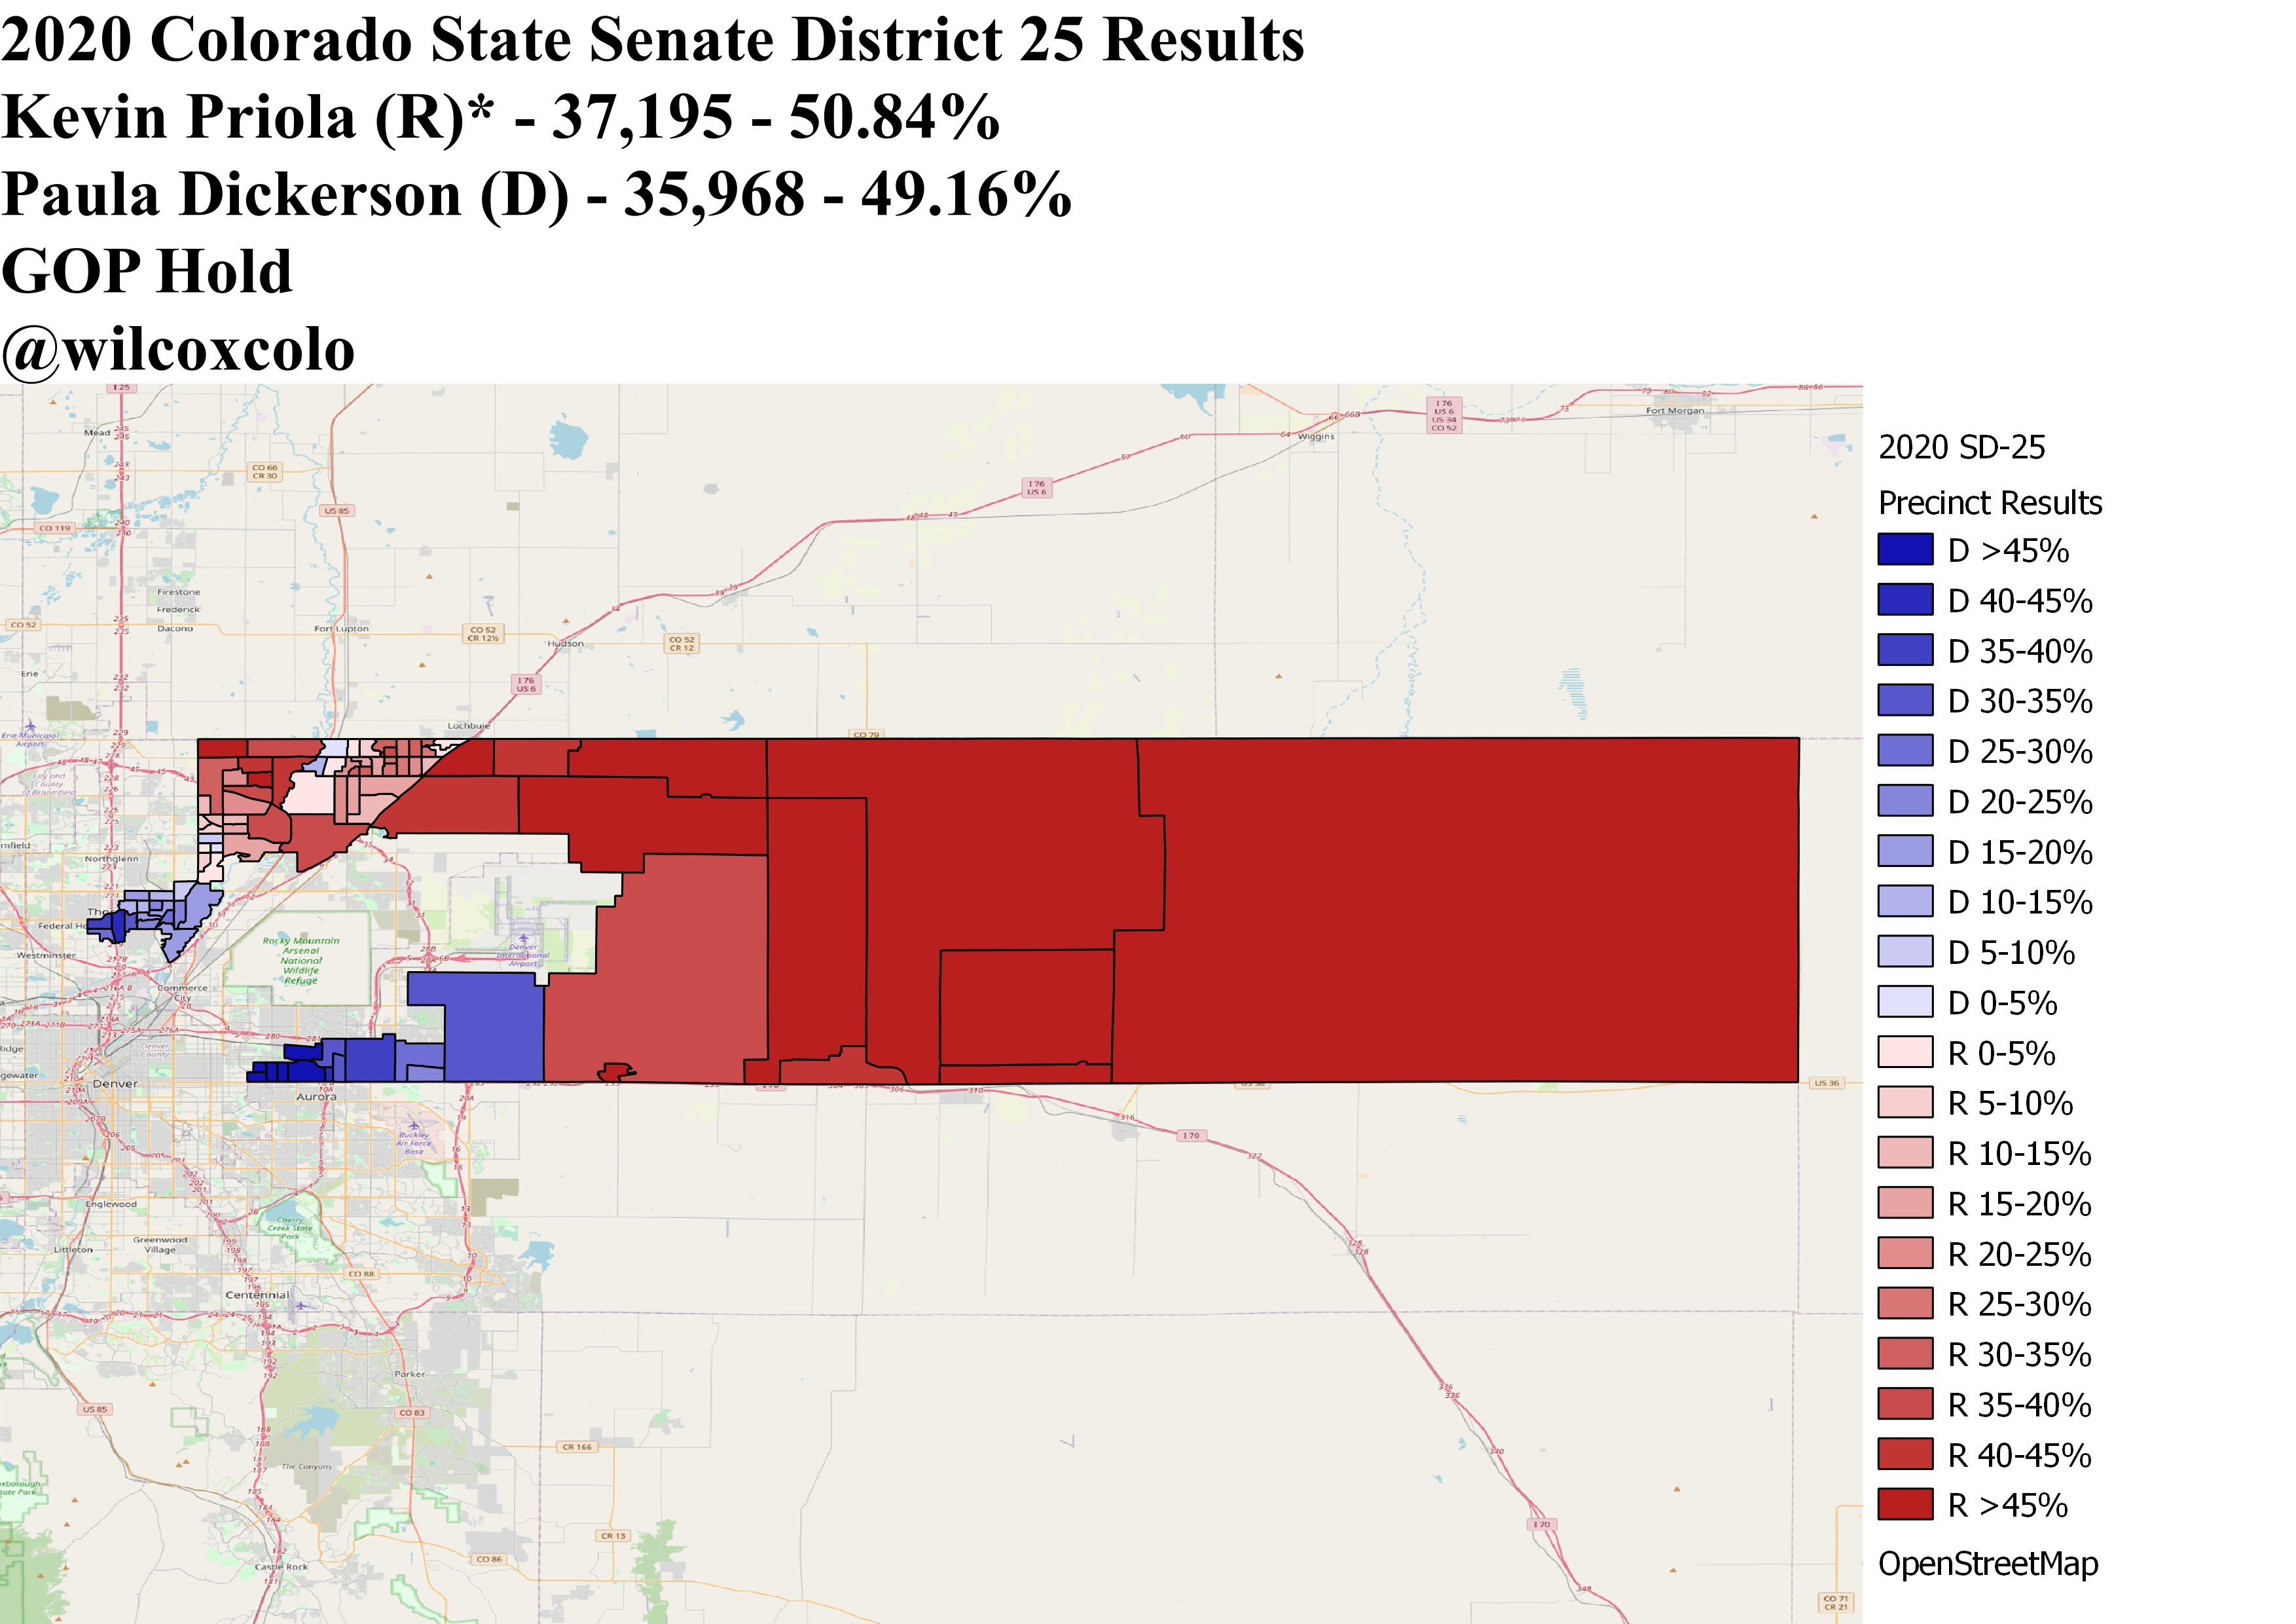 Precinct map shows deep blue city areas and deep red rural areas